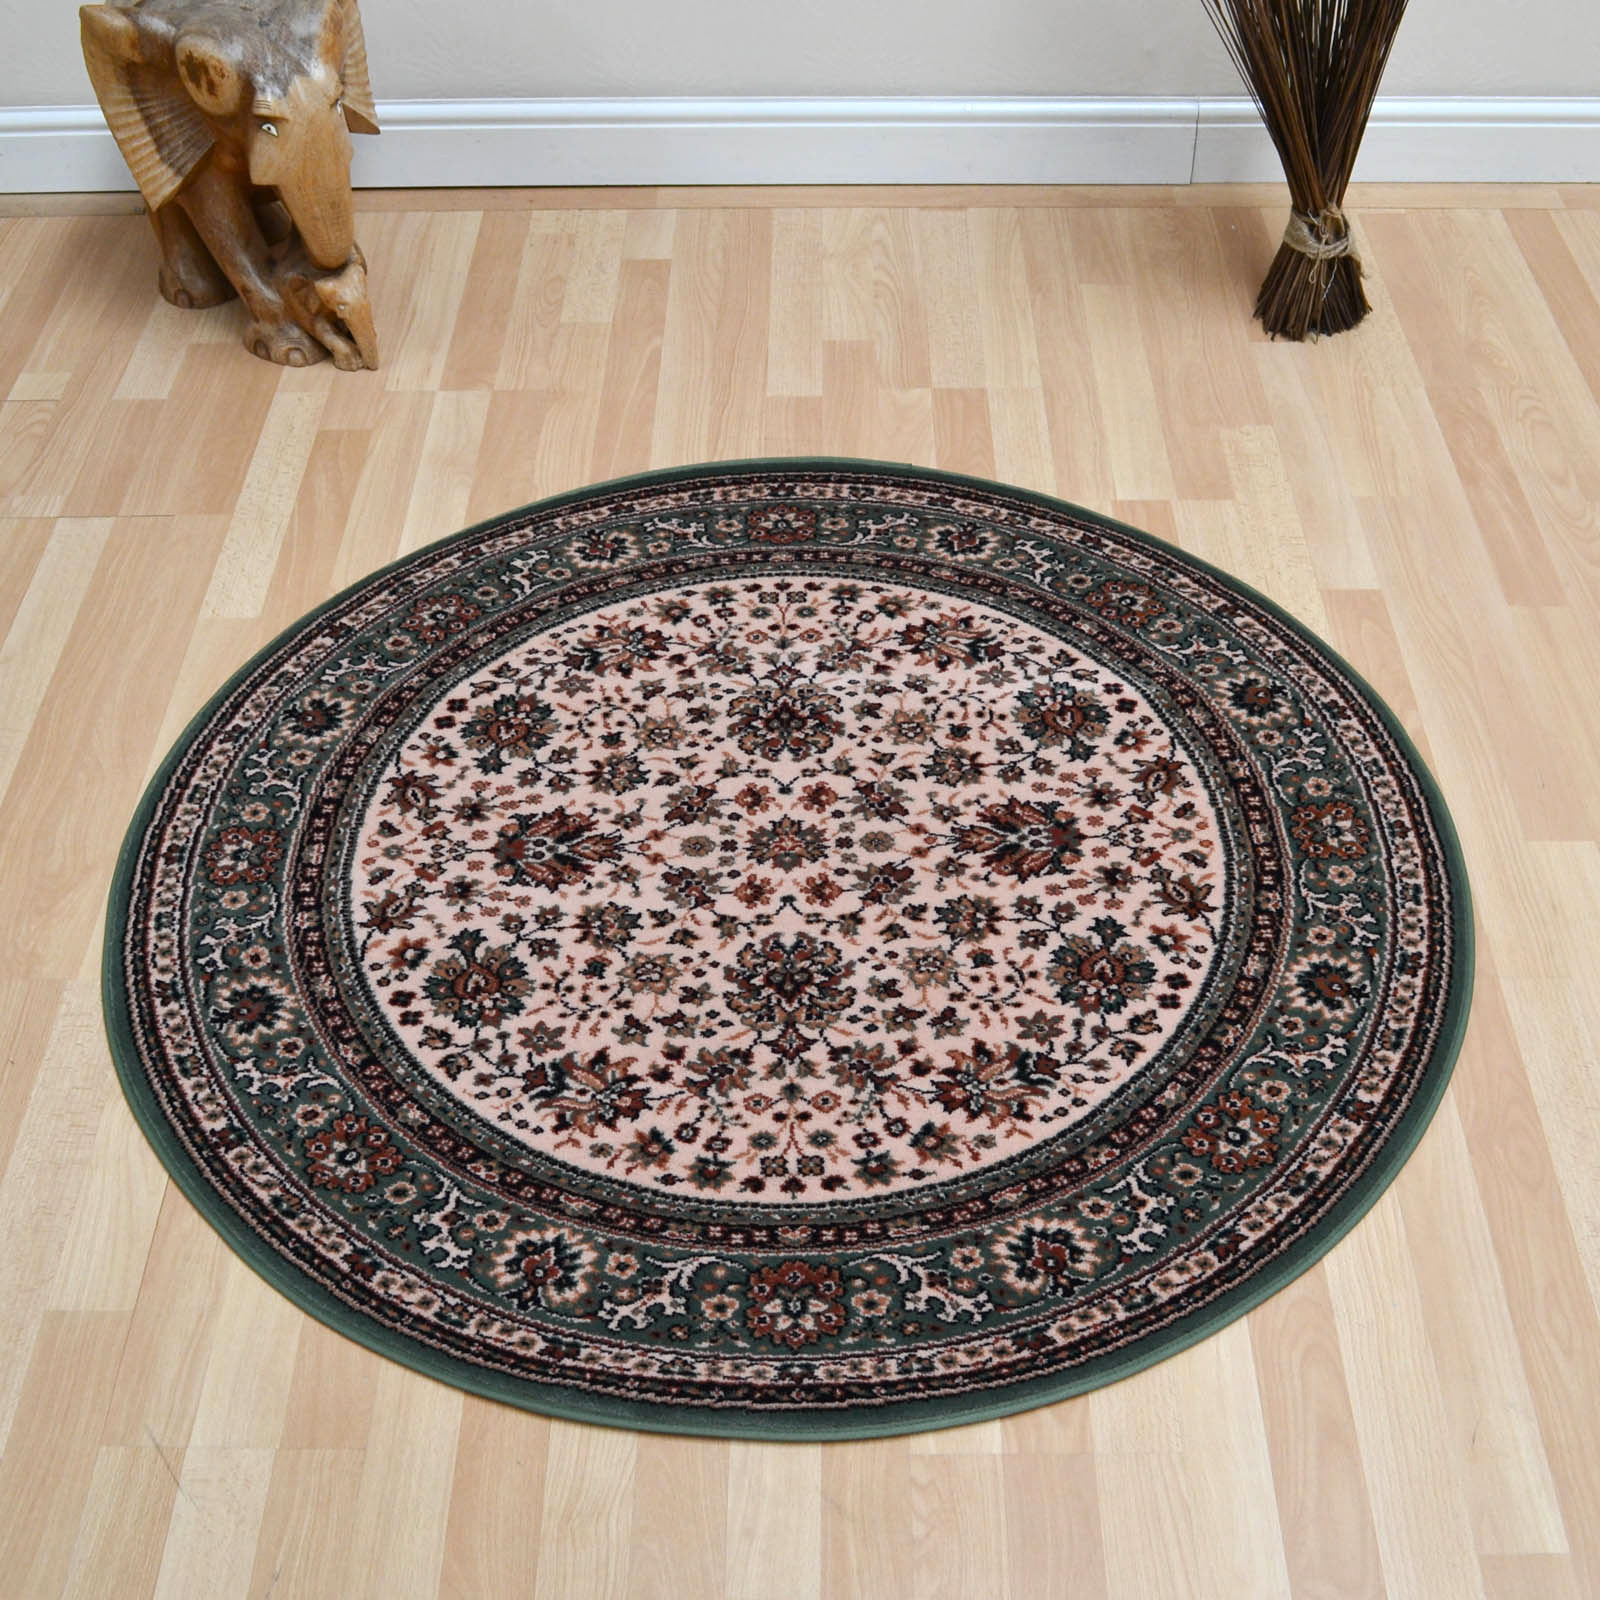 Lano Royal Circular Rugs 1570 508 Beige Green